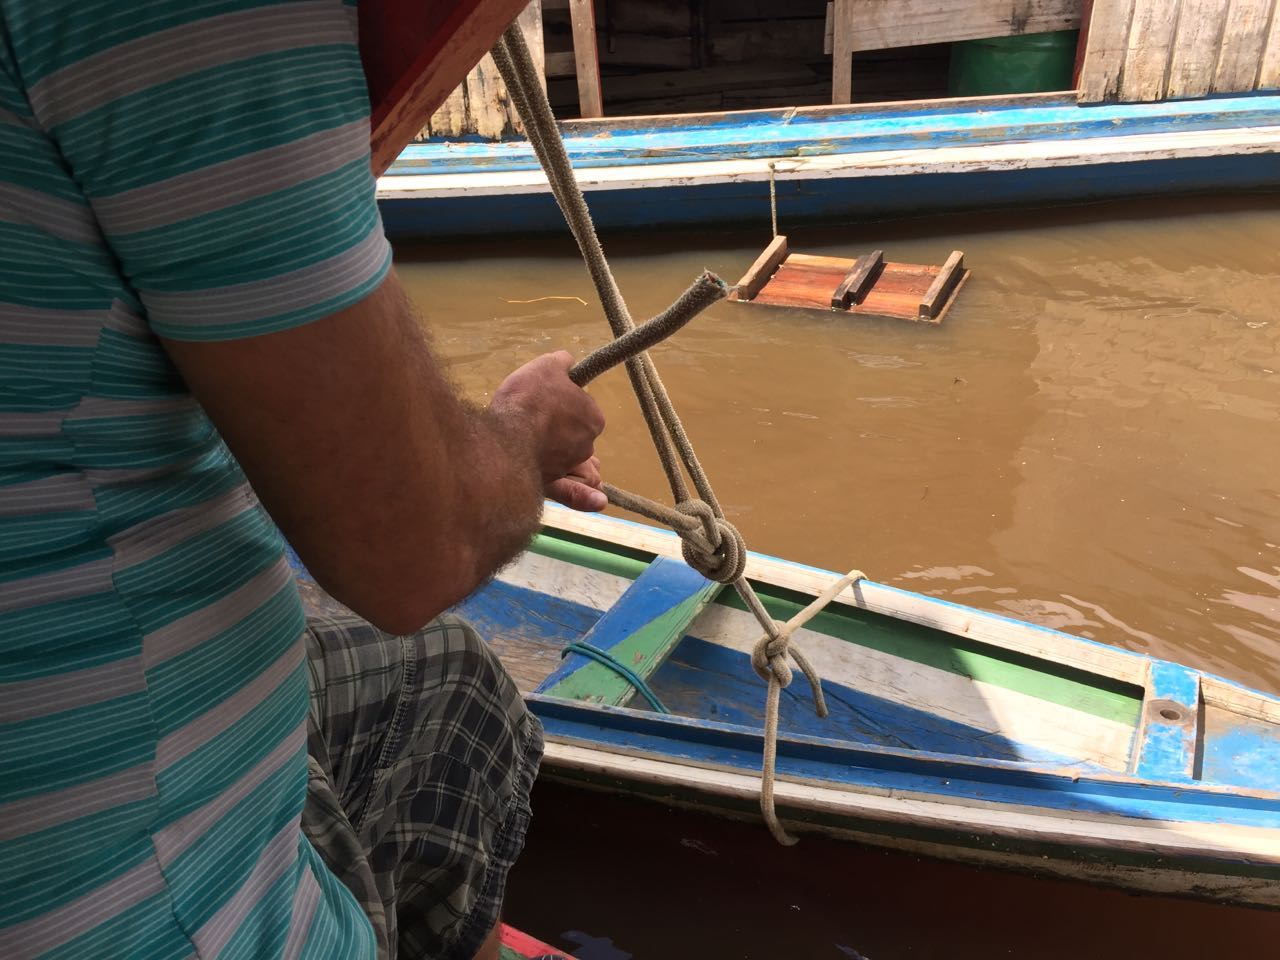 Tying down our canoes